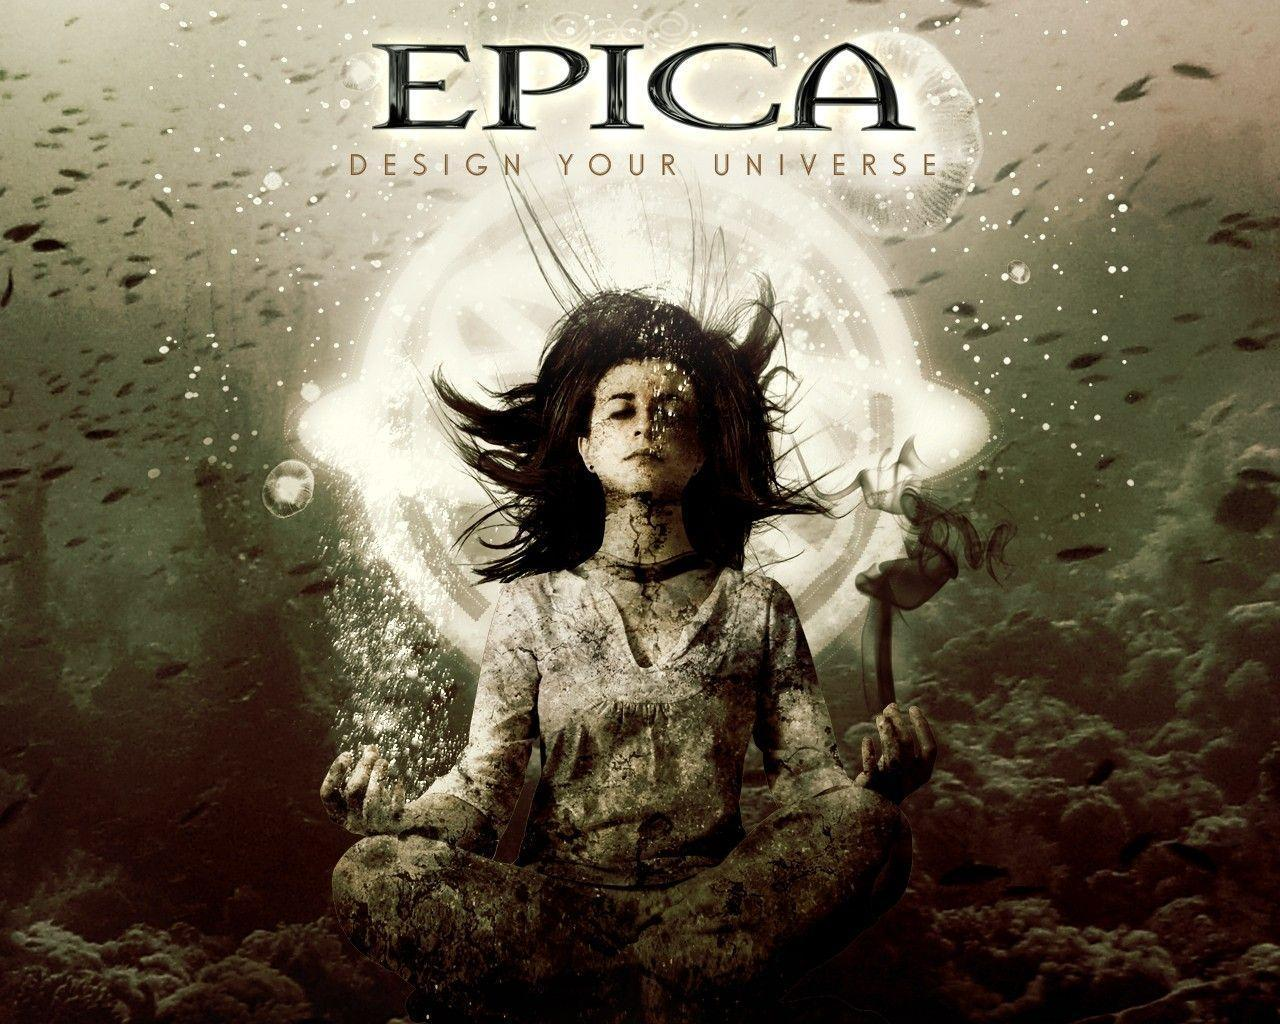 1920x1080 | Epica Wallpapers | Freddy Pixley